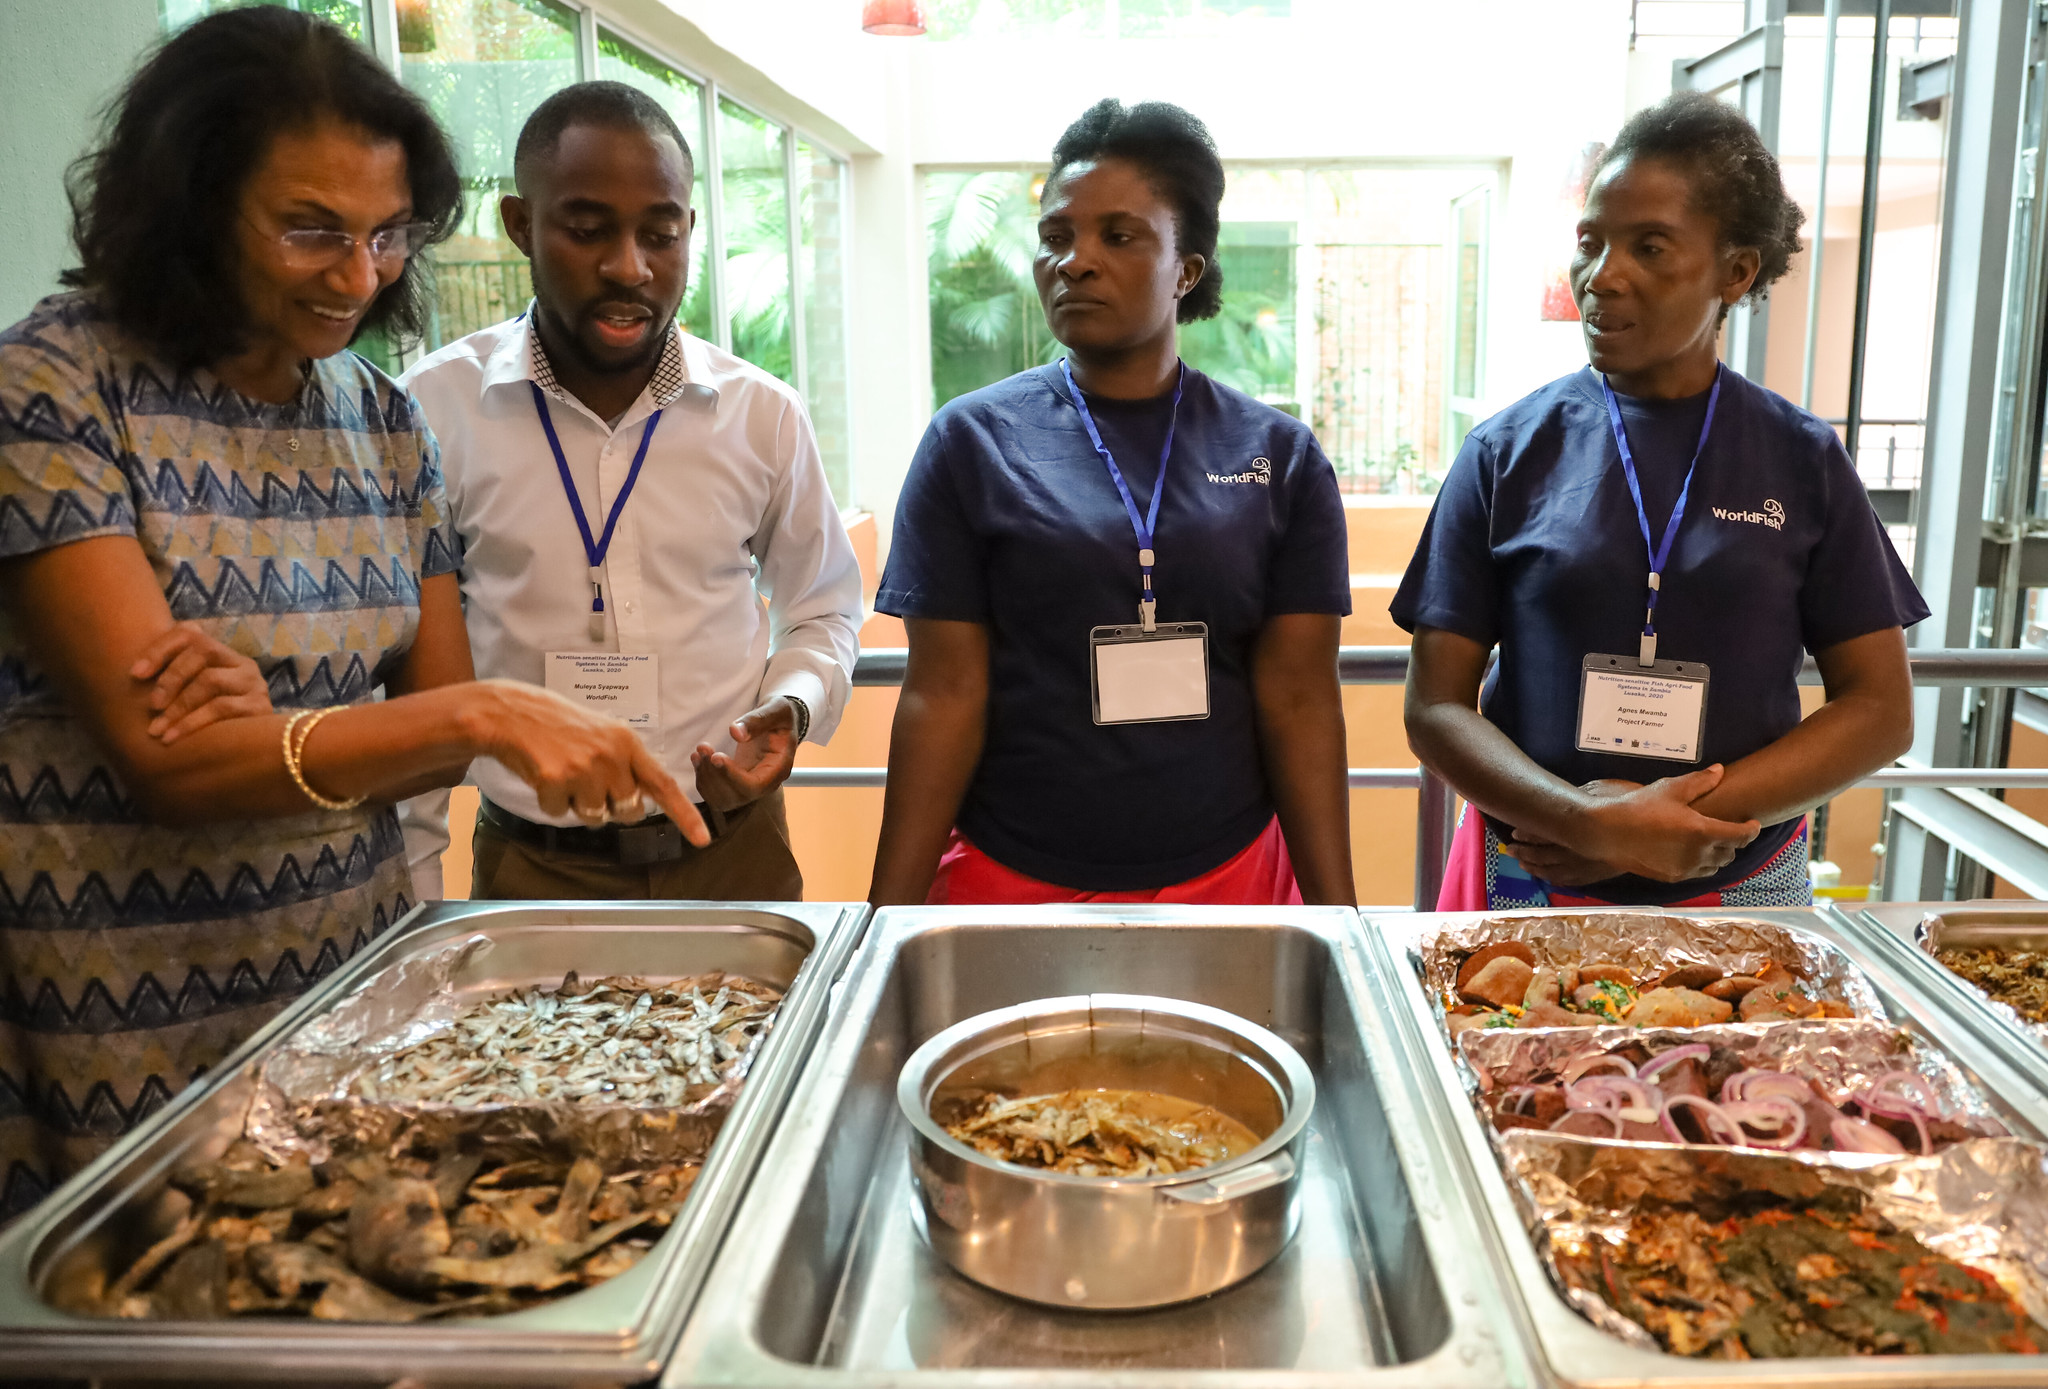 Dr. Thilsted and conference attendees looks at some small fish served in hot plates